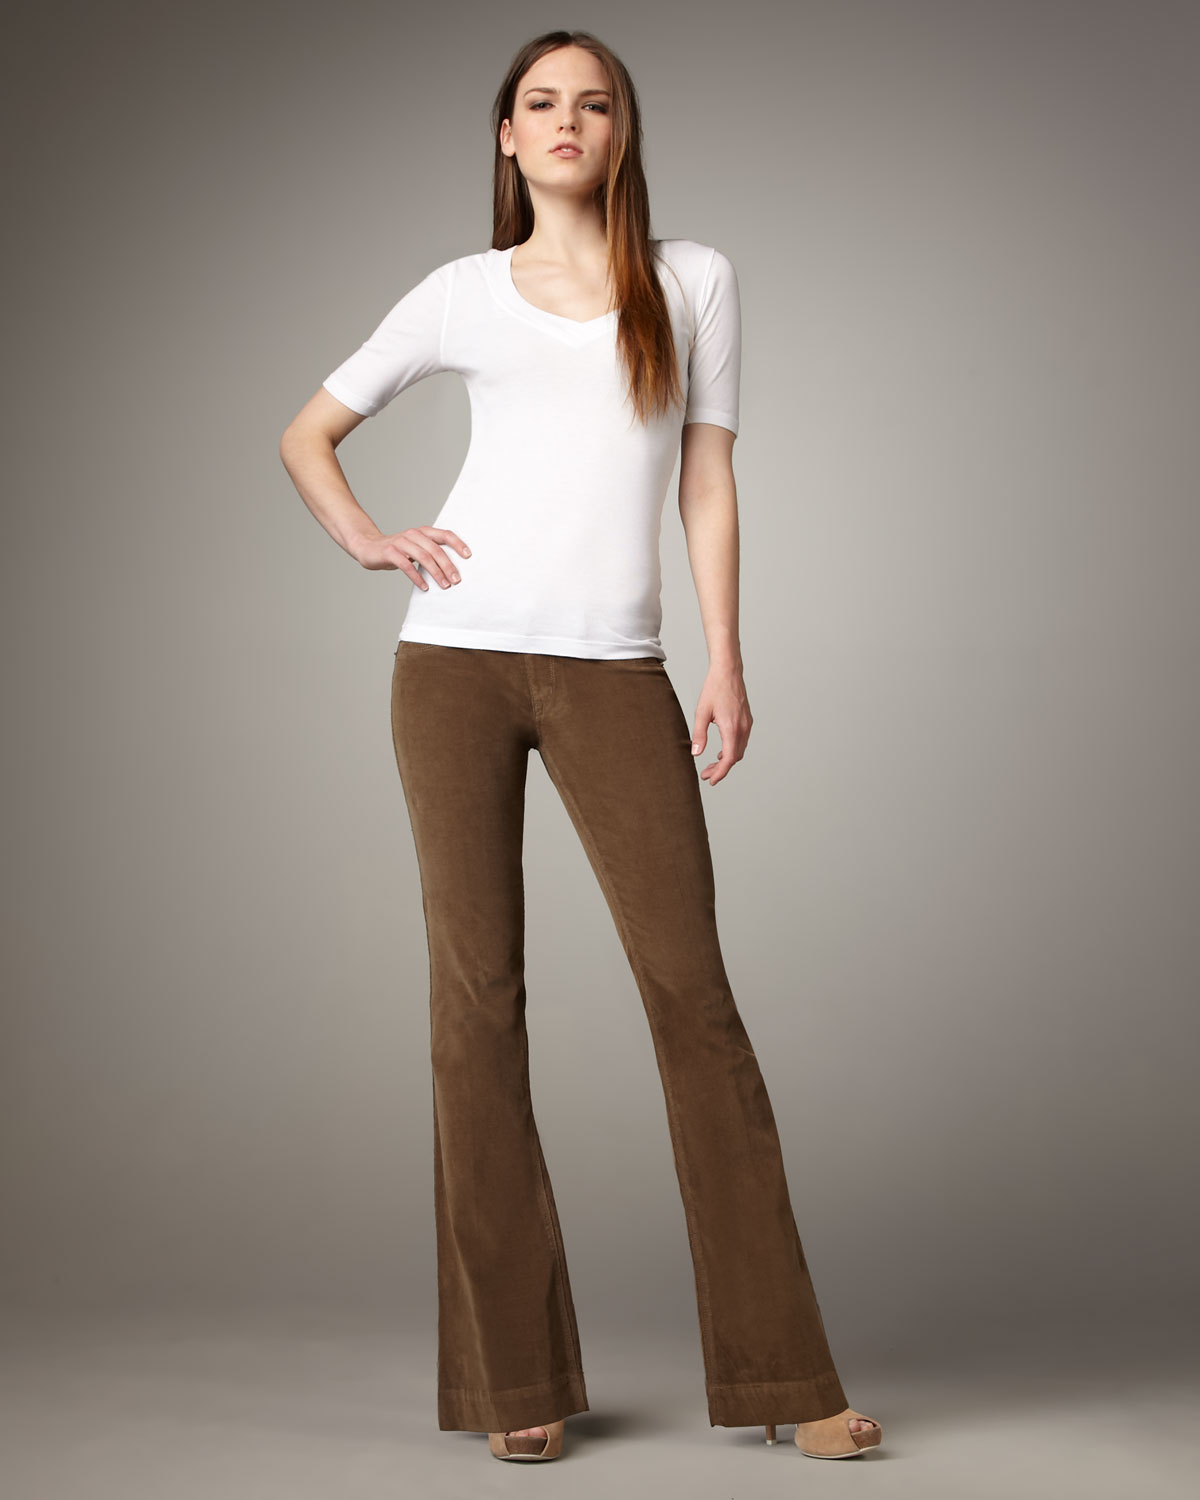 Sold denim Boot-cut Corduroy Pants, Tan in Brown | Lyst